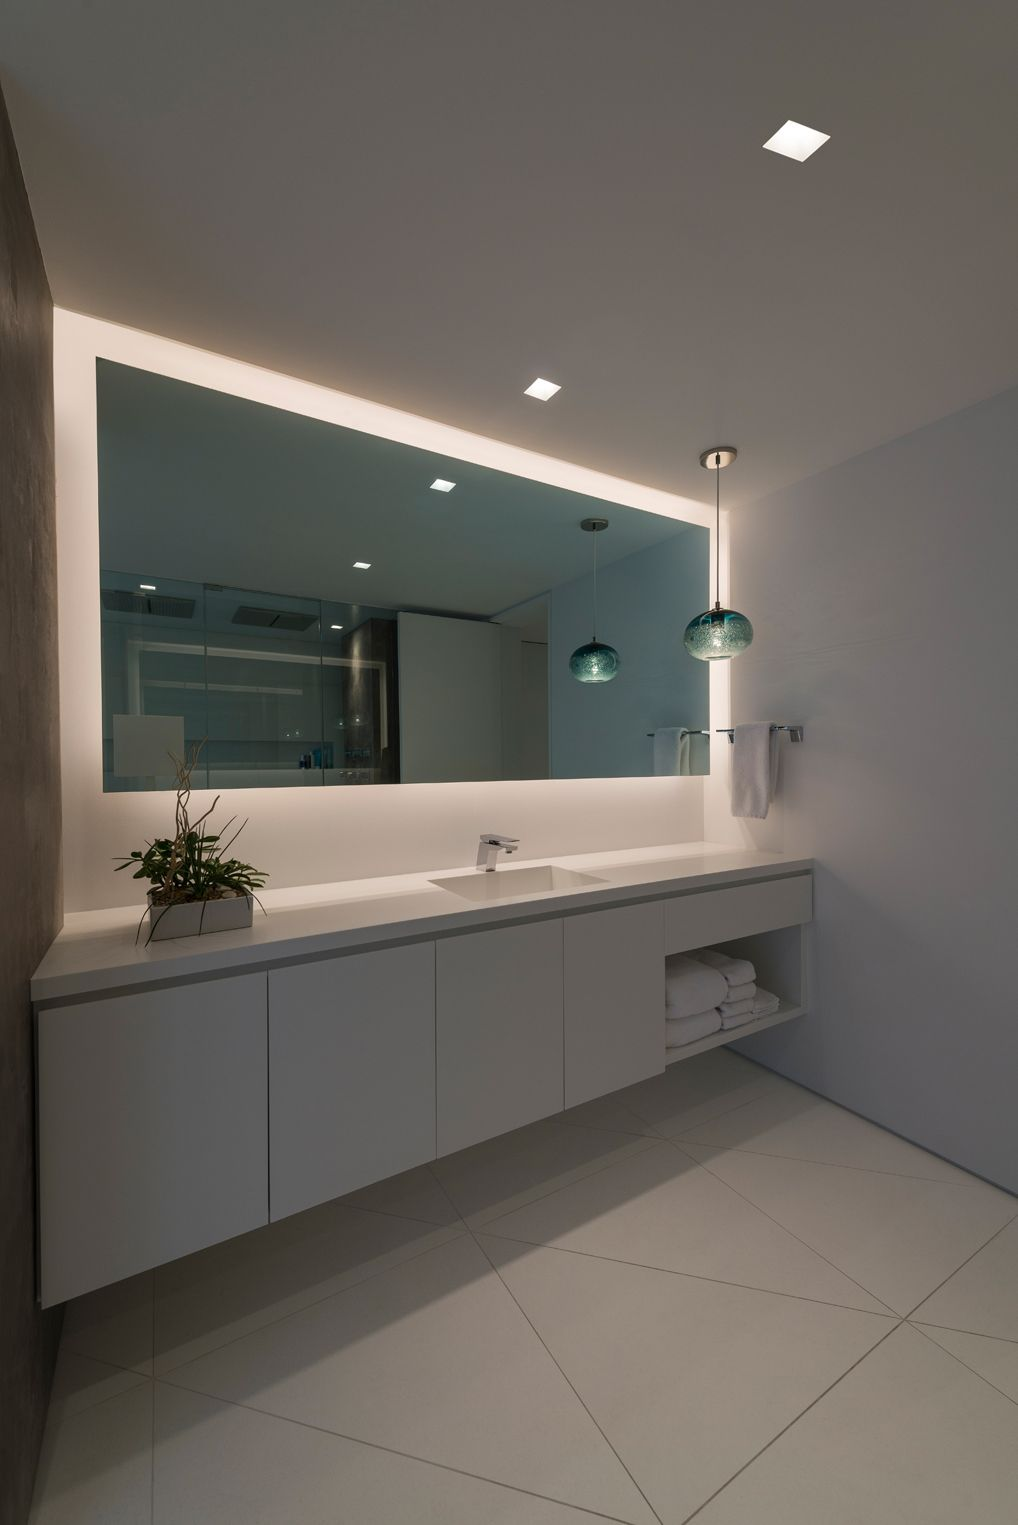 Bathroom Mirrors Led the truly trimless appearance of recessed square leds allow for a